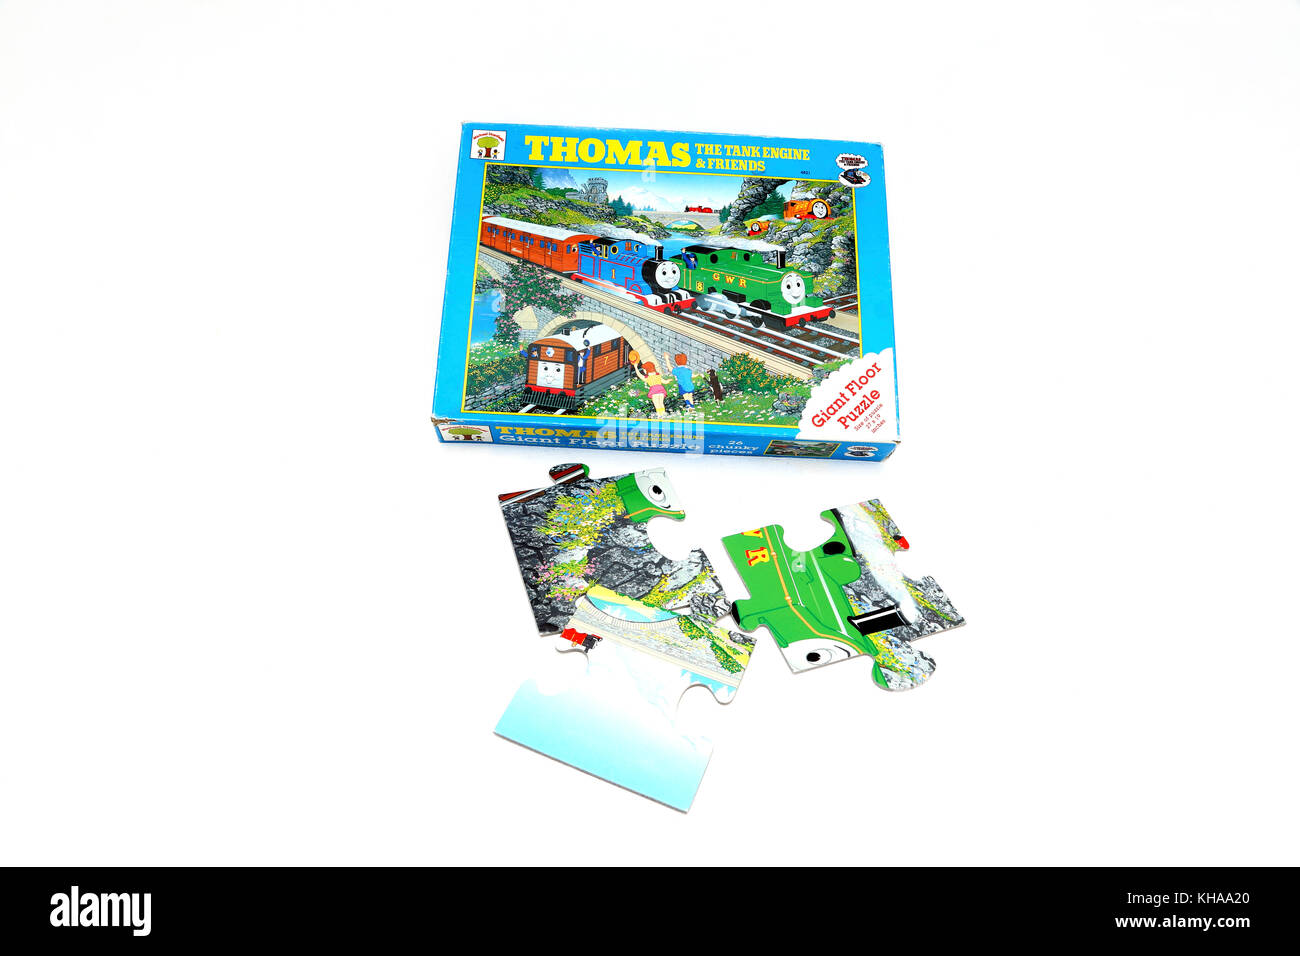 Thomas The Tank Engine And Friends Giant Floor Jigsaw Puzzle